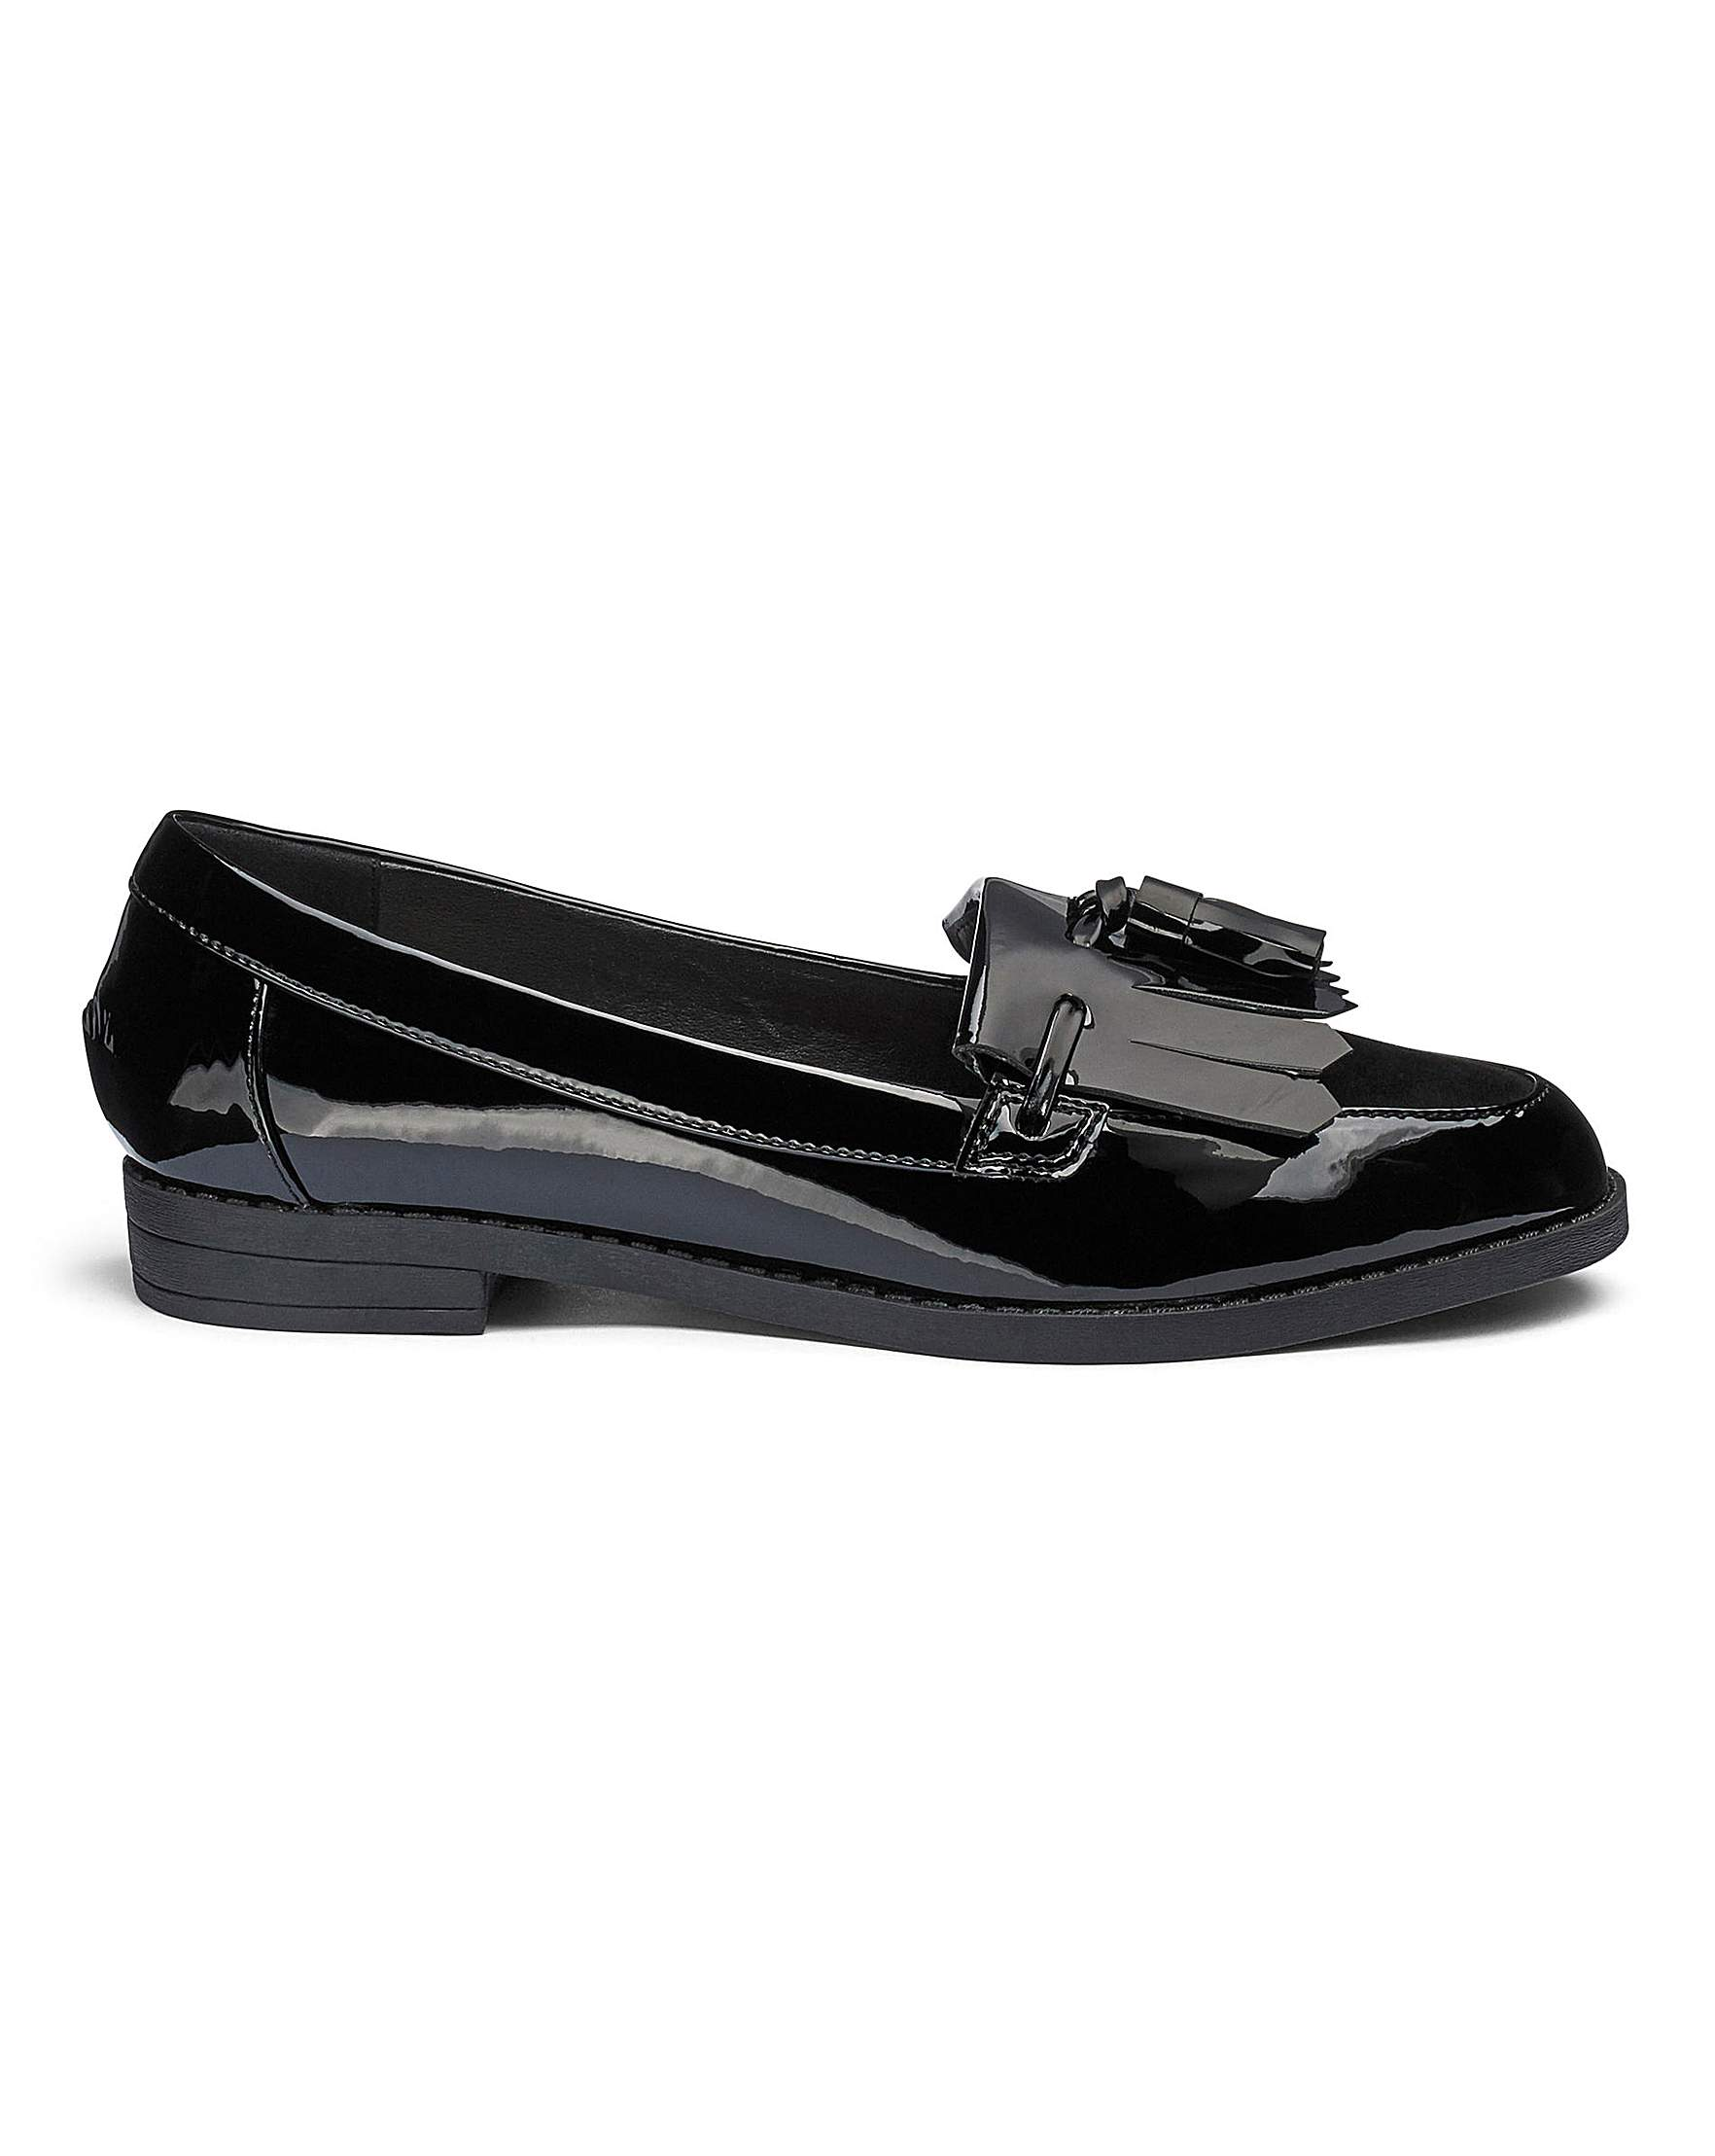 eaa2fbd2752 Slip On Fringe And Tassel Loafers Extra Wide EEE Fit